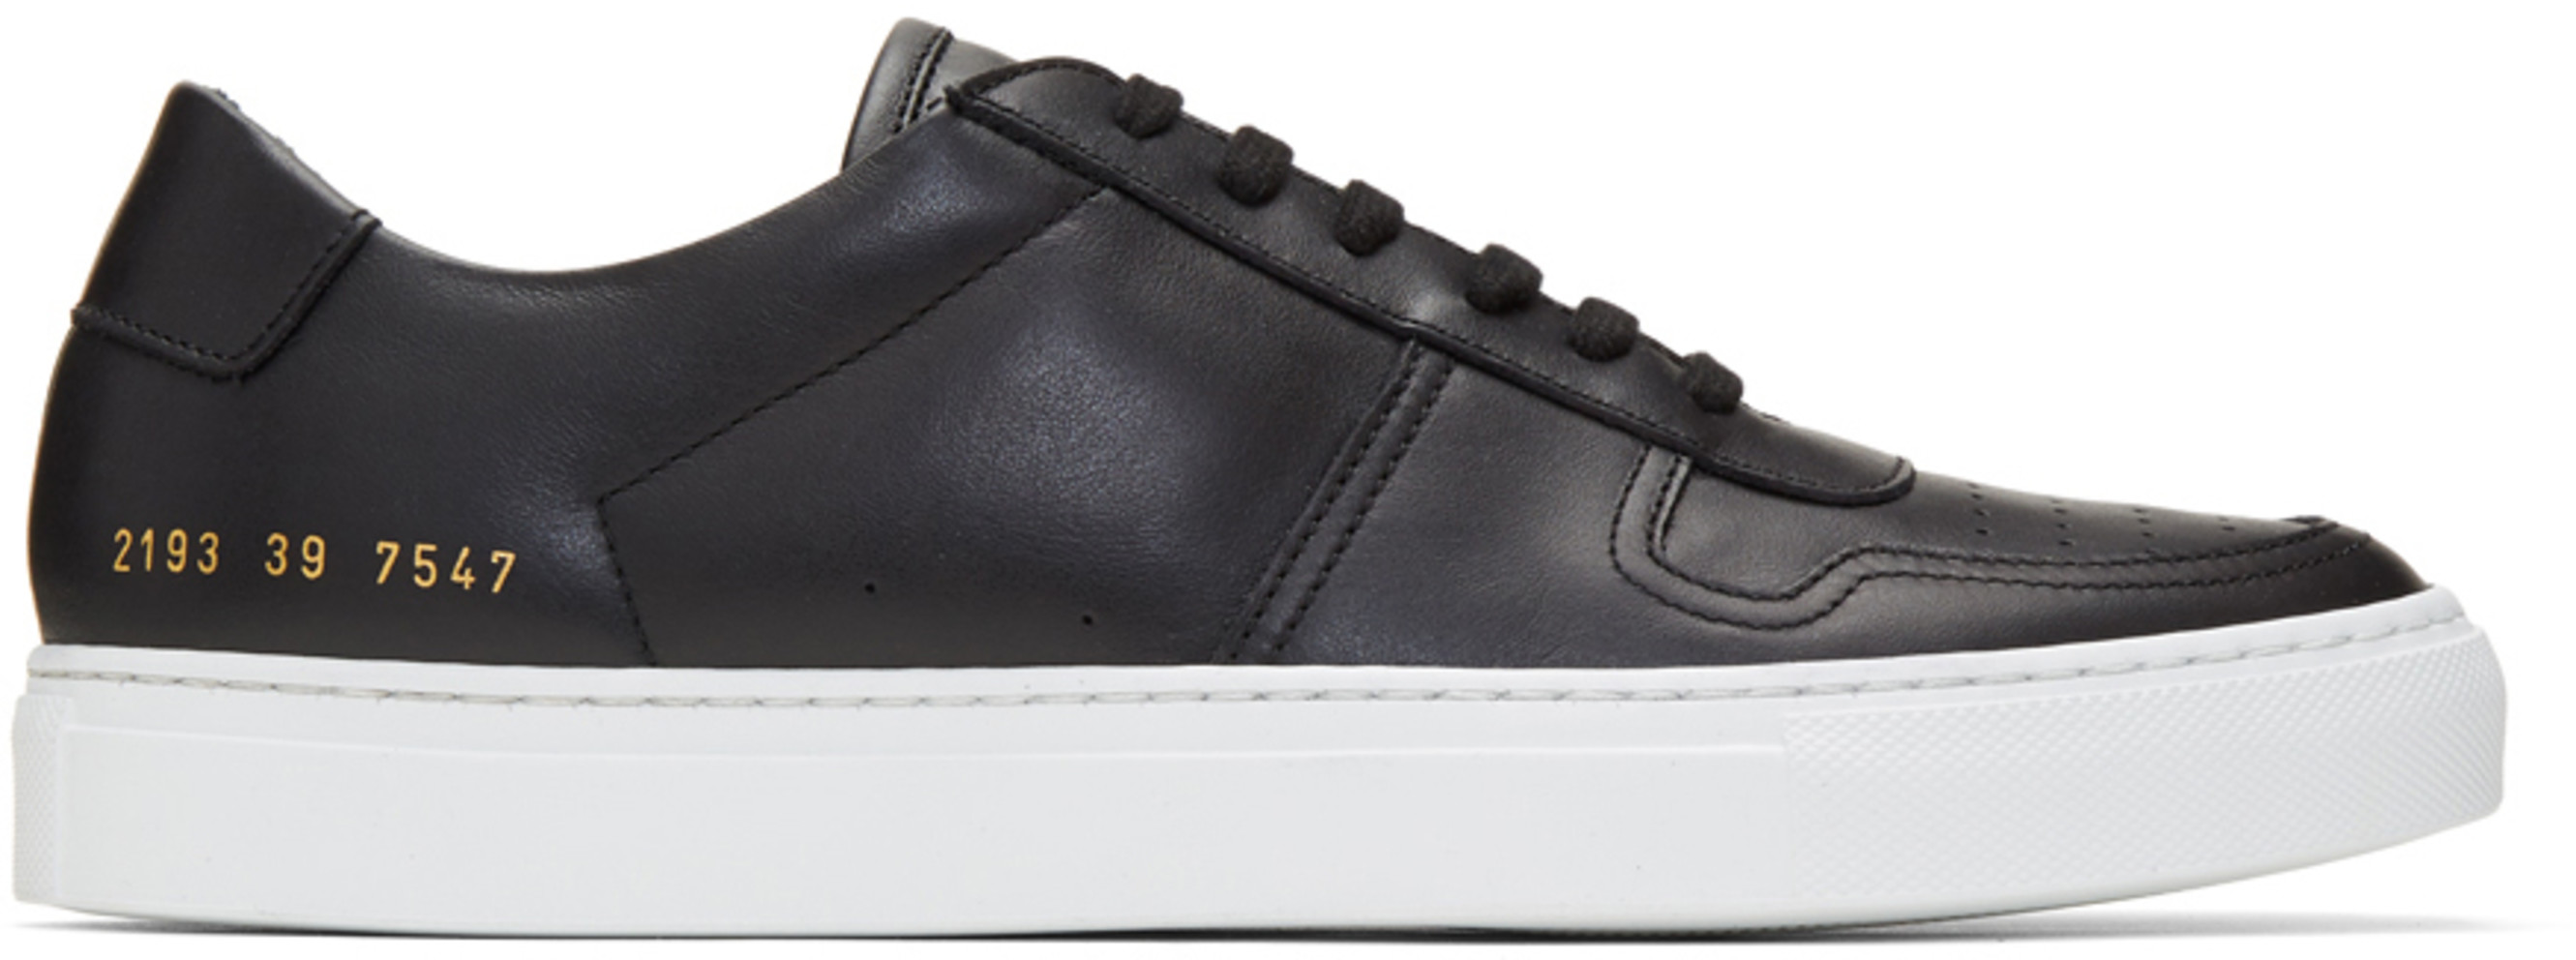 88d75ff4ef19a Common Projects for Men SS19 Collection